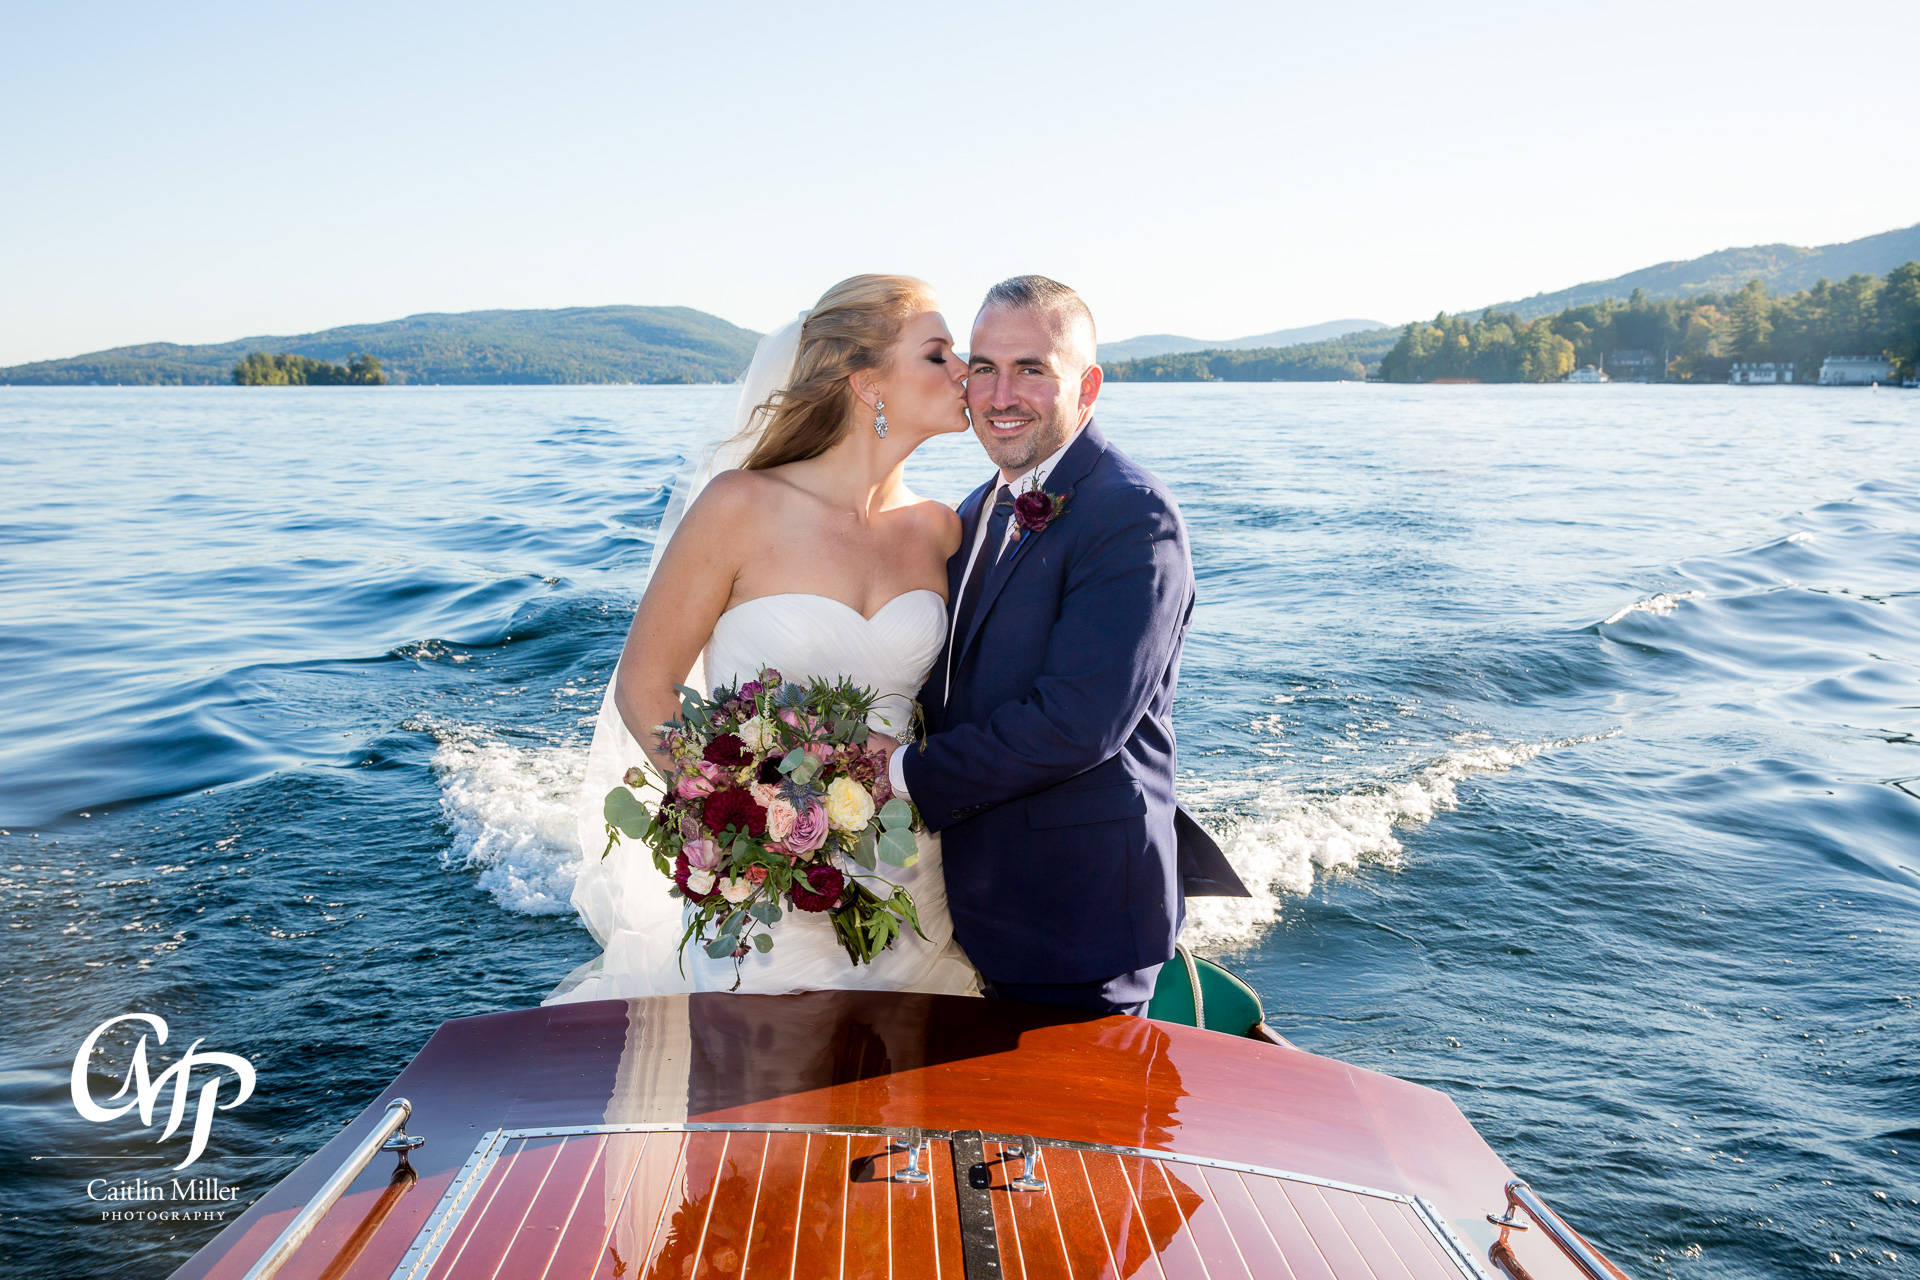 0420.jpg from Mackenzie and Eric's Lake George wedding at the Lake George Club by Saratoga Wedding Photographer Caitlin Miller Photography. Lake George Wedding Photographer. Adirondack wedding photographer. Albany wedding photographer. Lake Placid Wedding Photographer. Saratoga Wedding Photographer